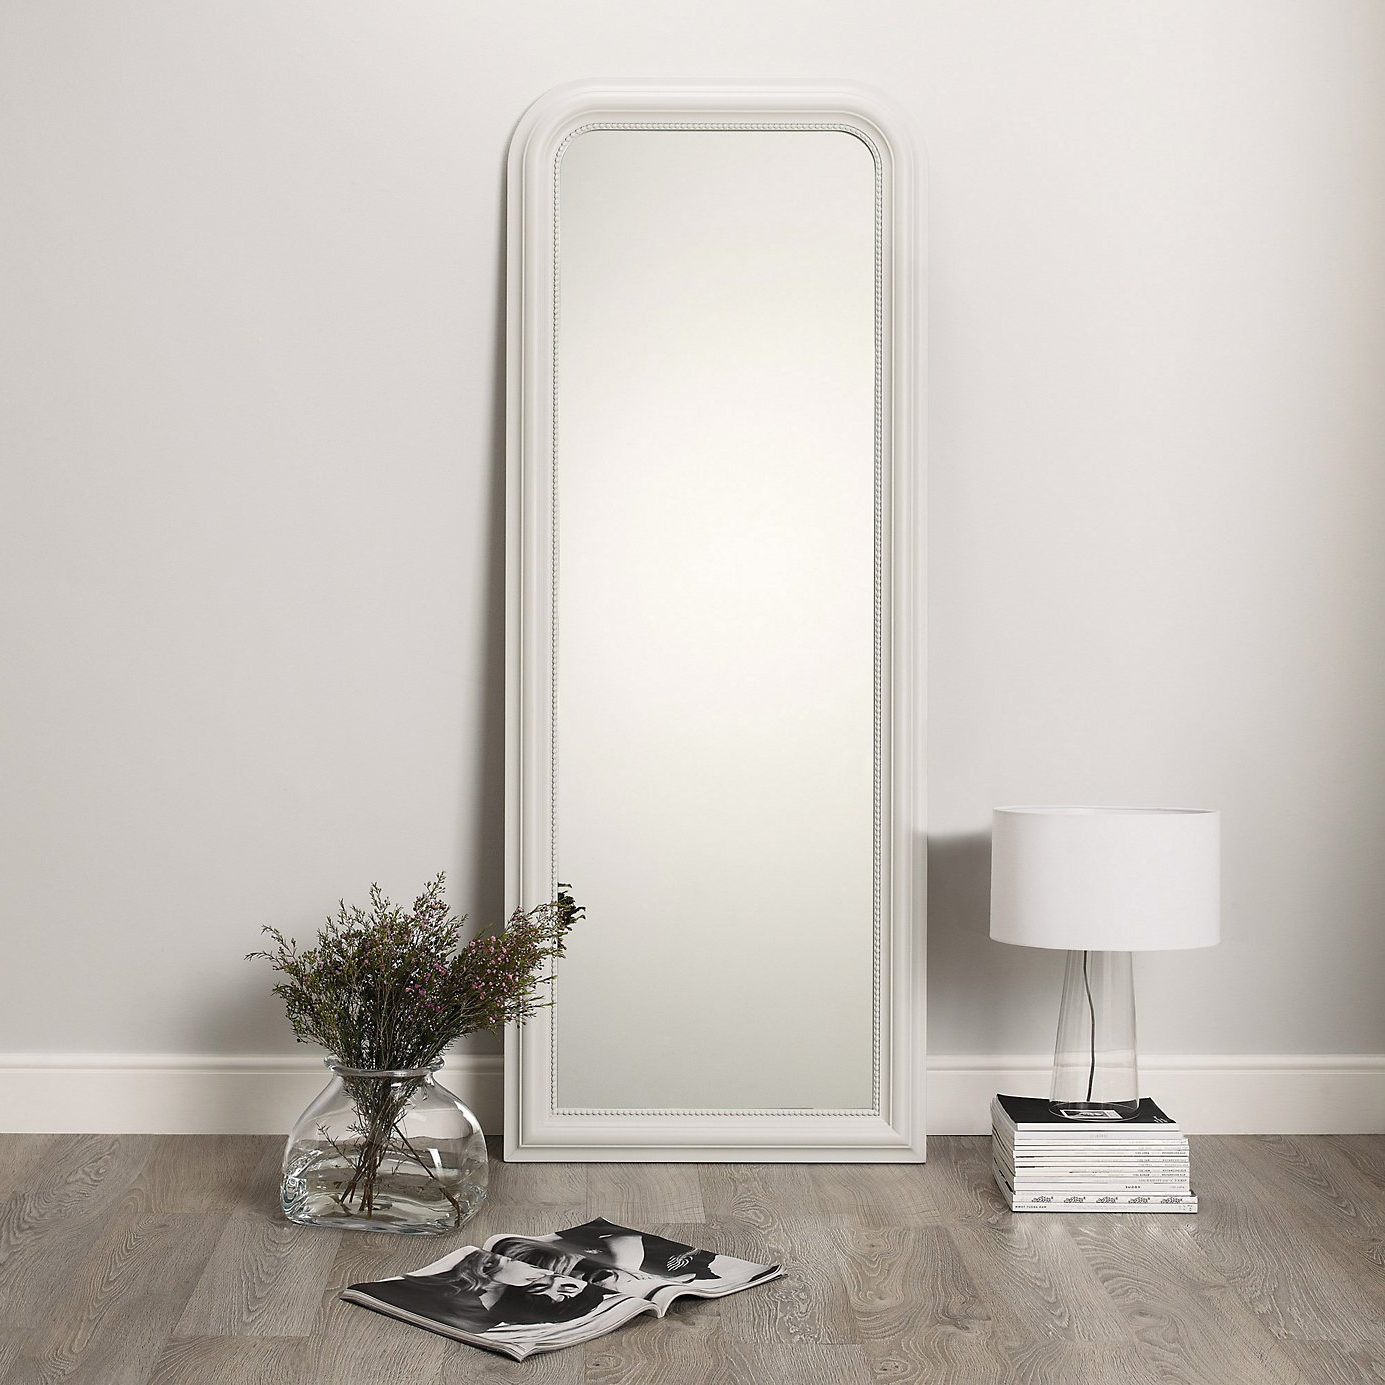 Most Up To Date Full Length Decorative Wall Mirrors Strong Wooden Material Modern With Framed Full Length Wall Mirrors (View 18 of 20)